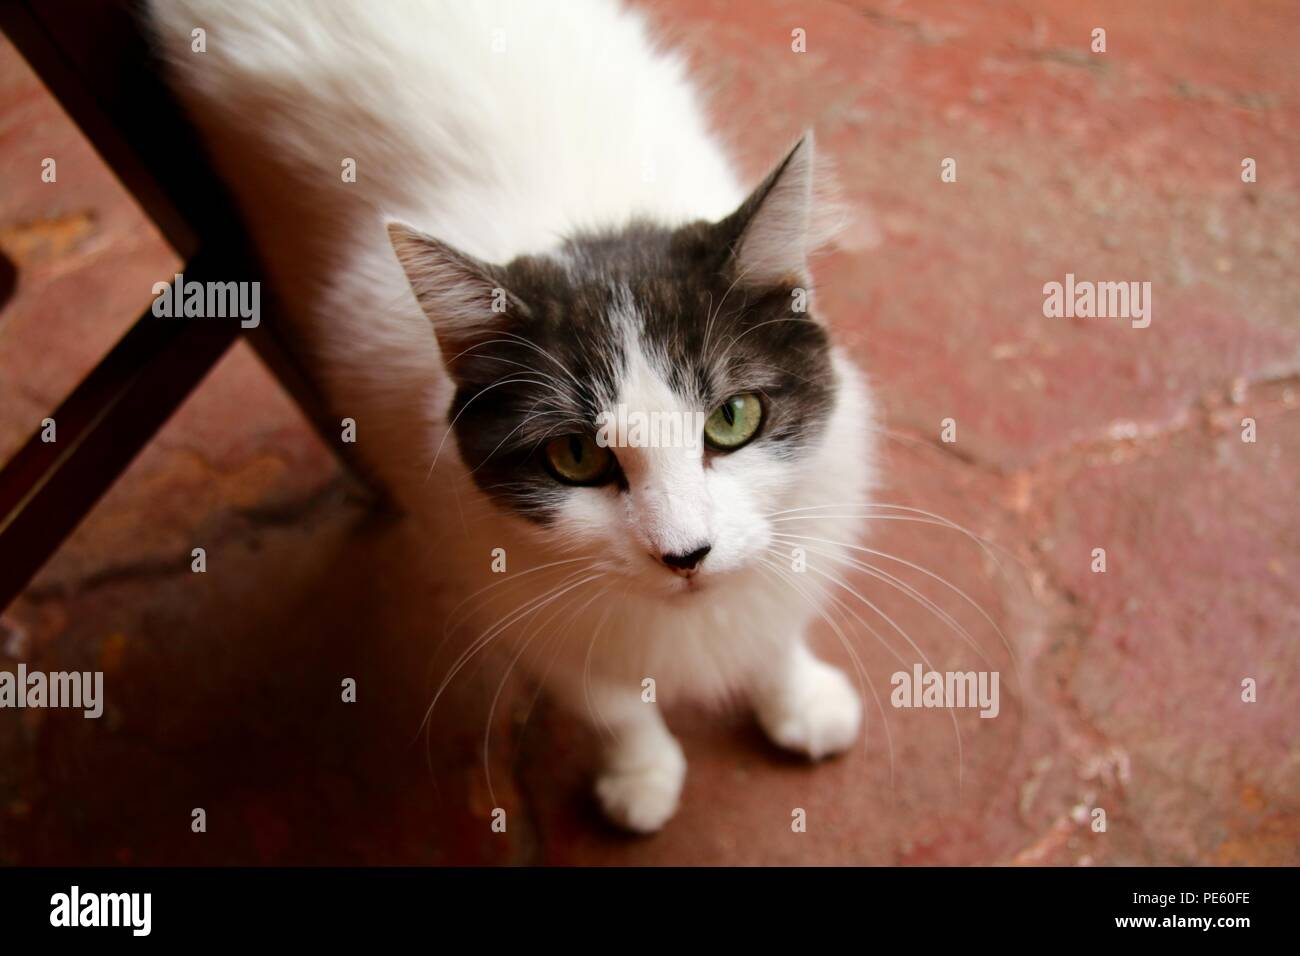 Long haired grey and white cat looking up at you - Stock Image